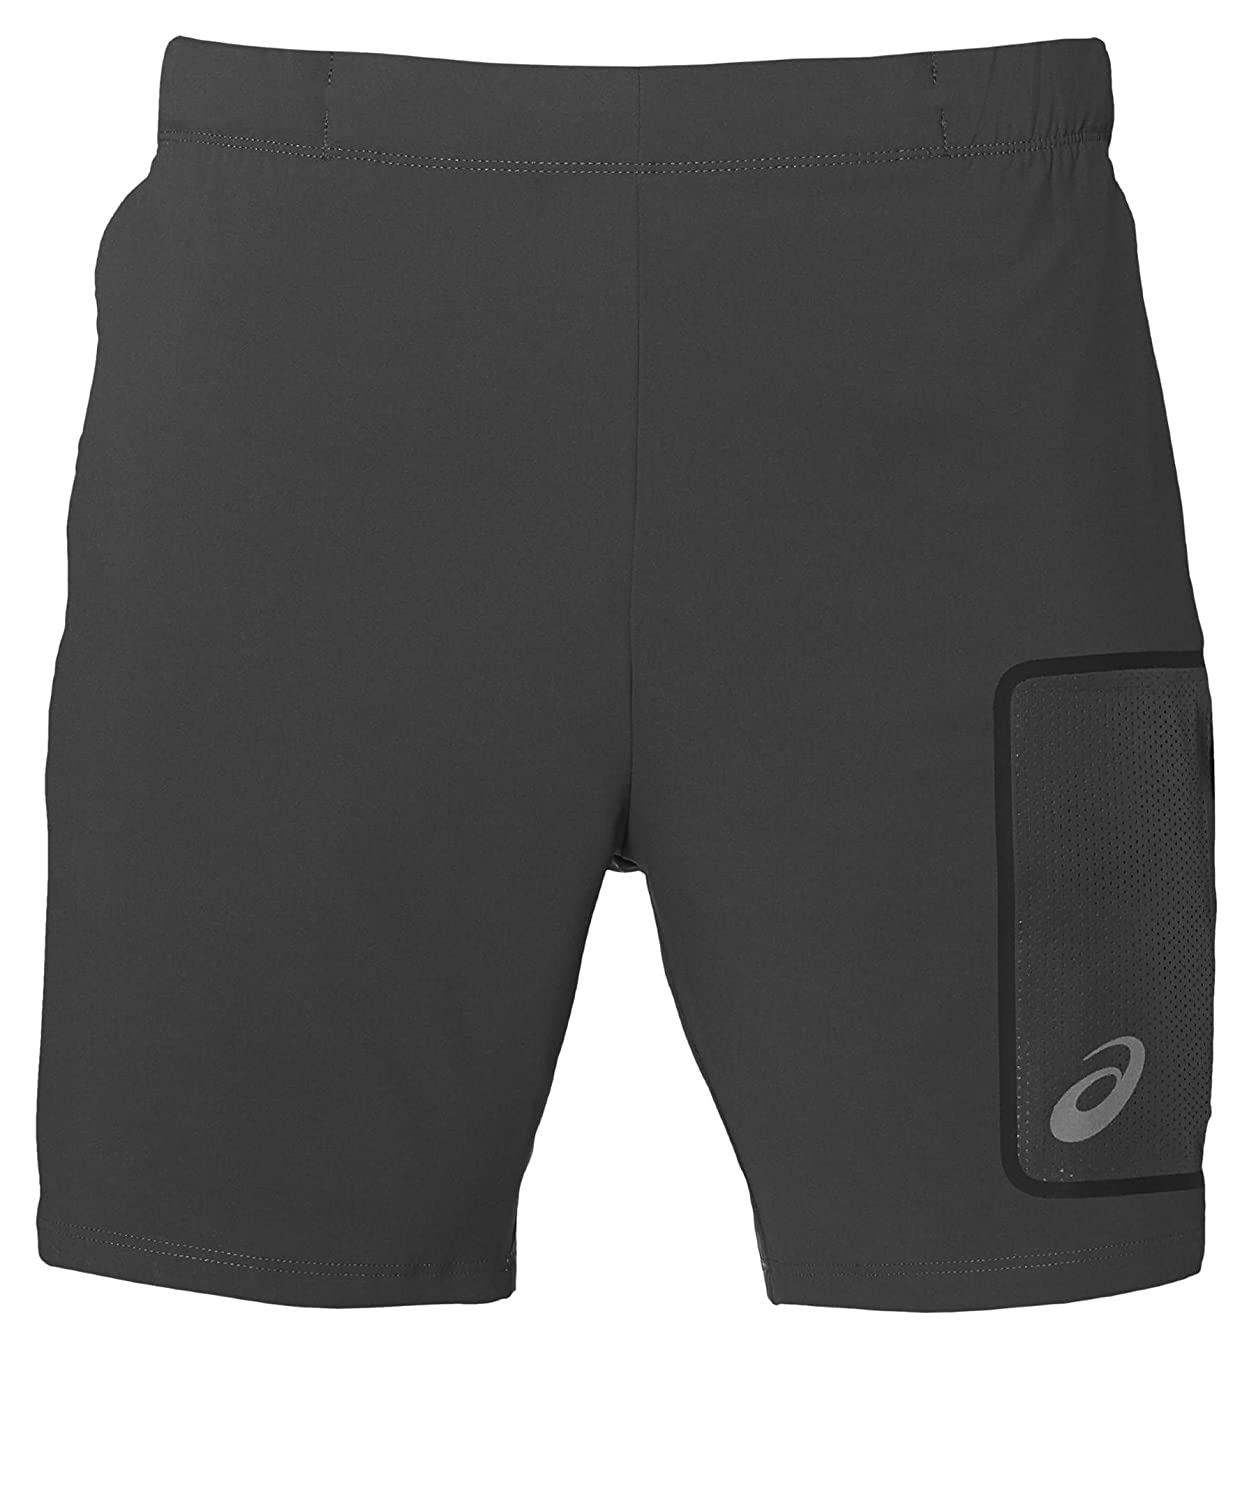 ASICS Elite 7 in Shorts, Kurze